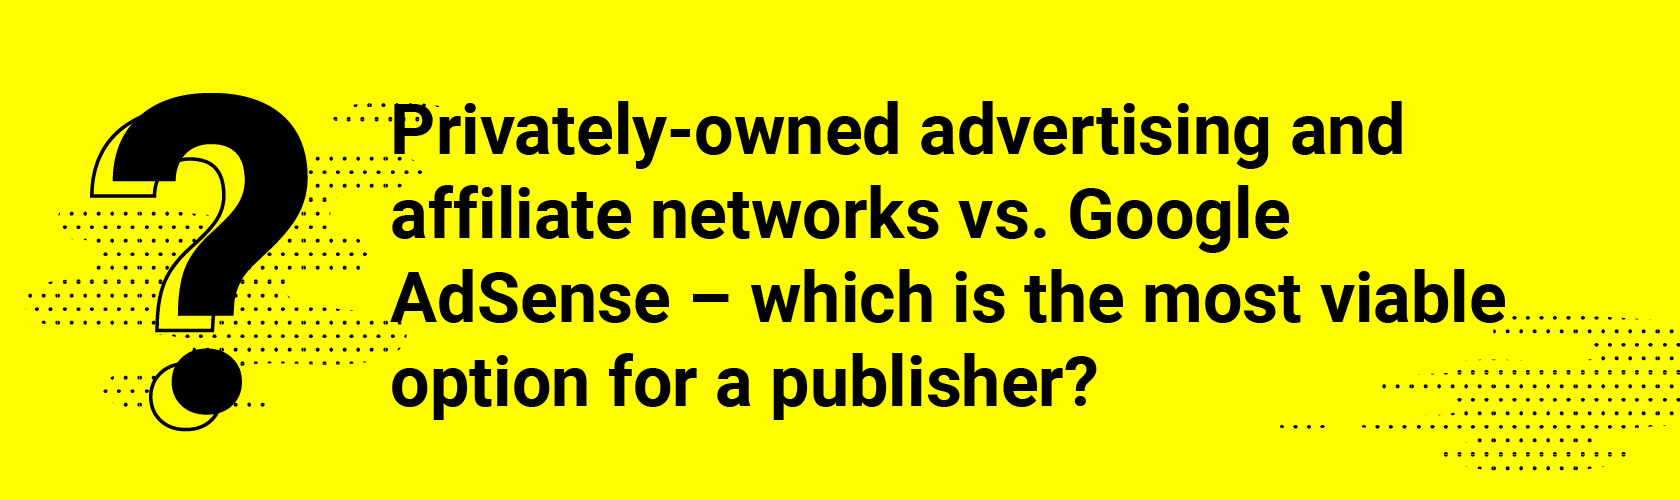 Q4. Privately-owned advertising and affiliate networks vs. Google AdSense – which is the most viable option for a publisher?